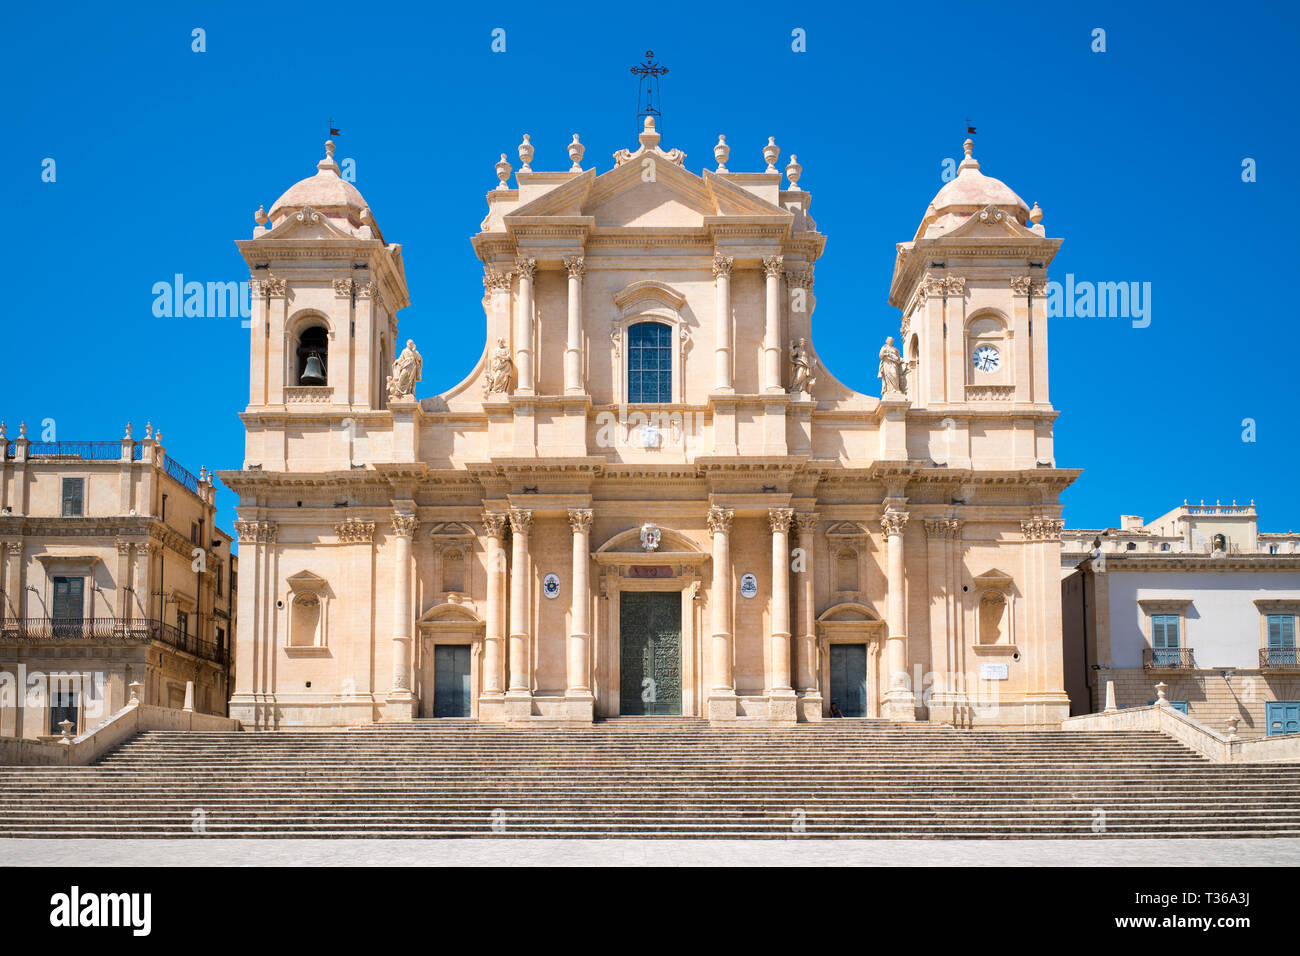 Front elevation and steps of Baroque Cathedral of Saint Nicholas - Basilica di San Nicolo in Noto city, Sicily, Italy Stock Photo